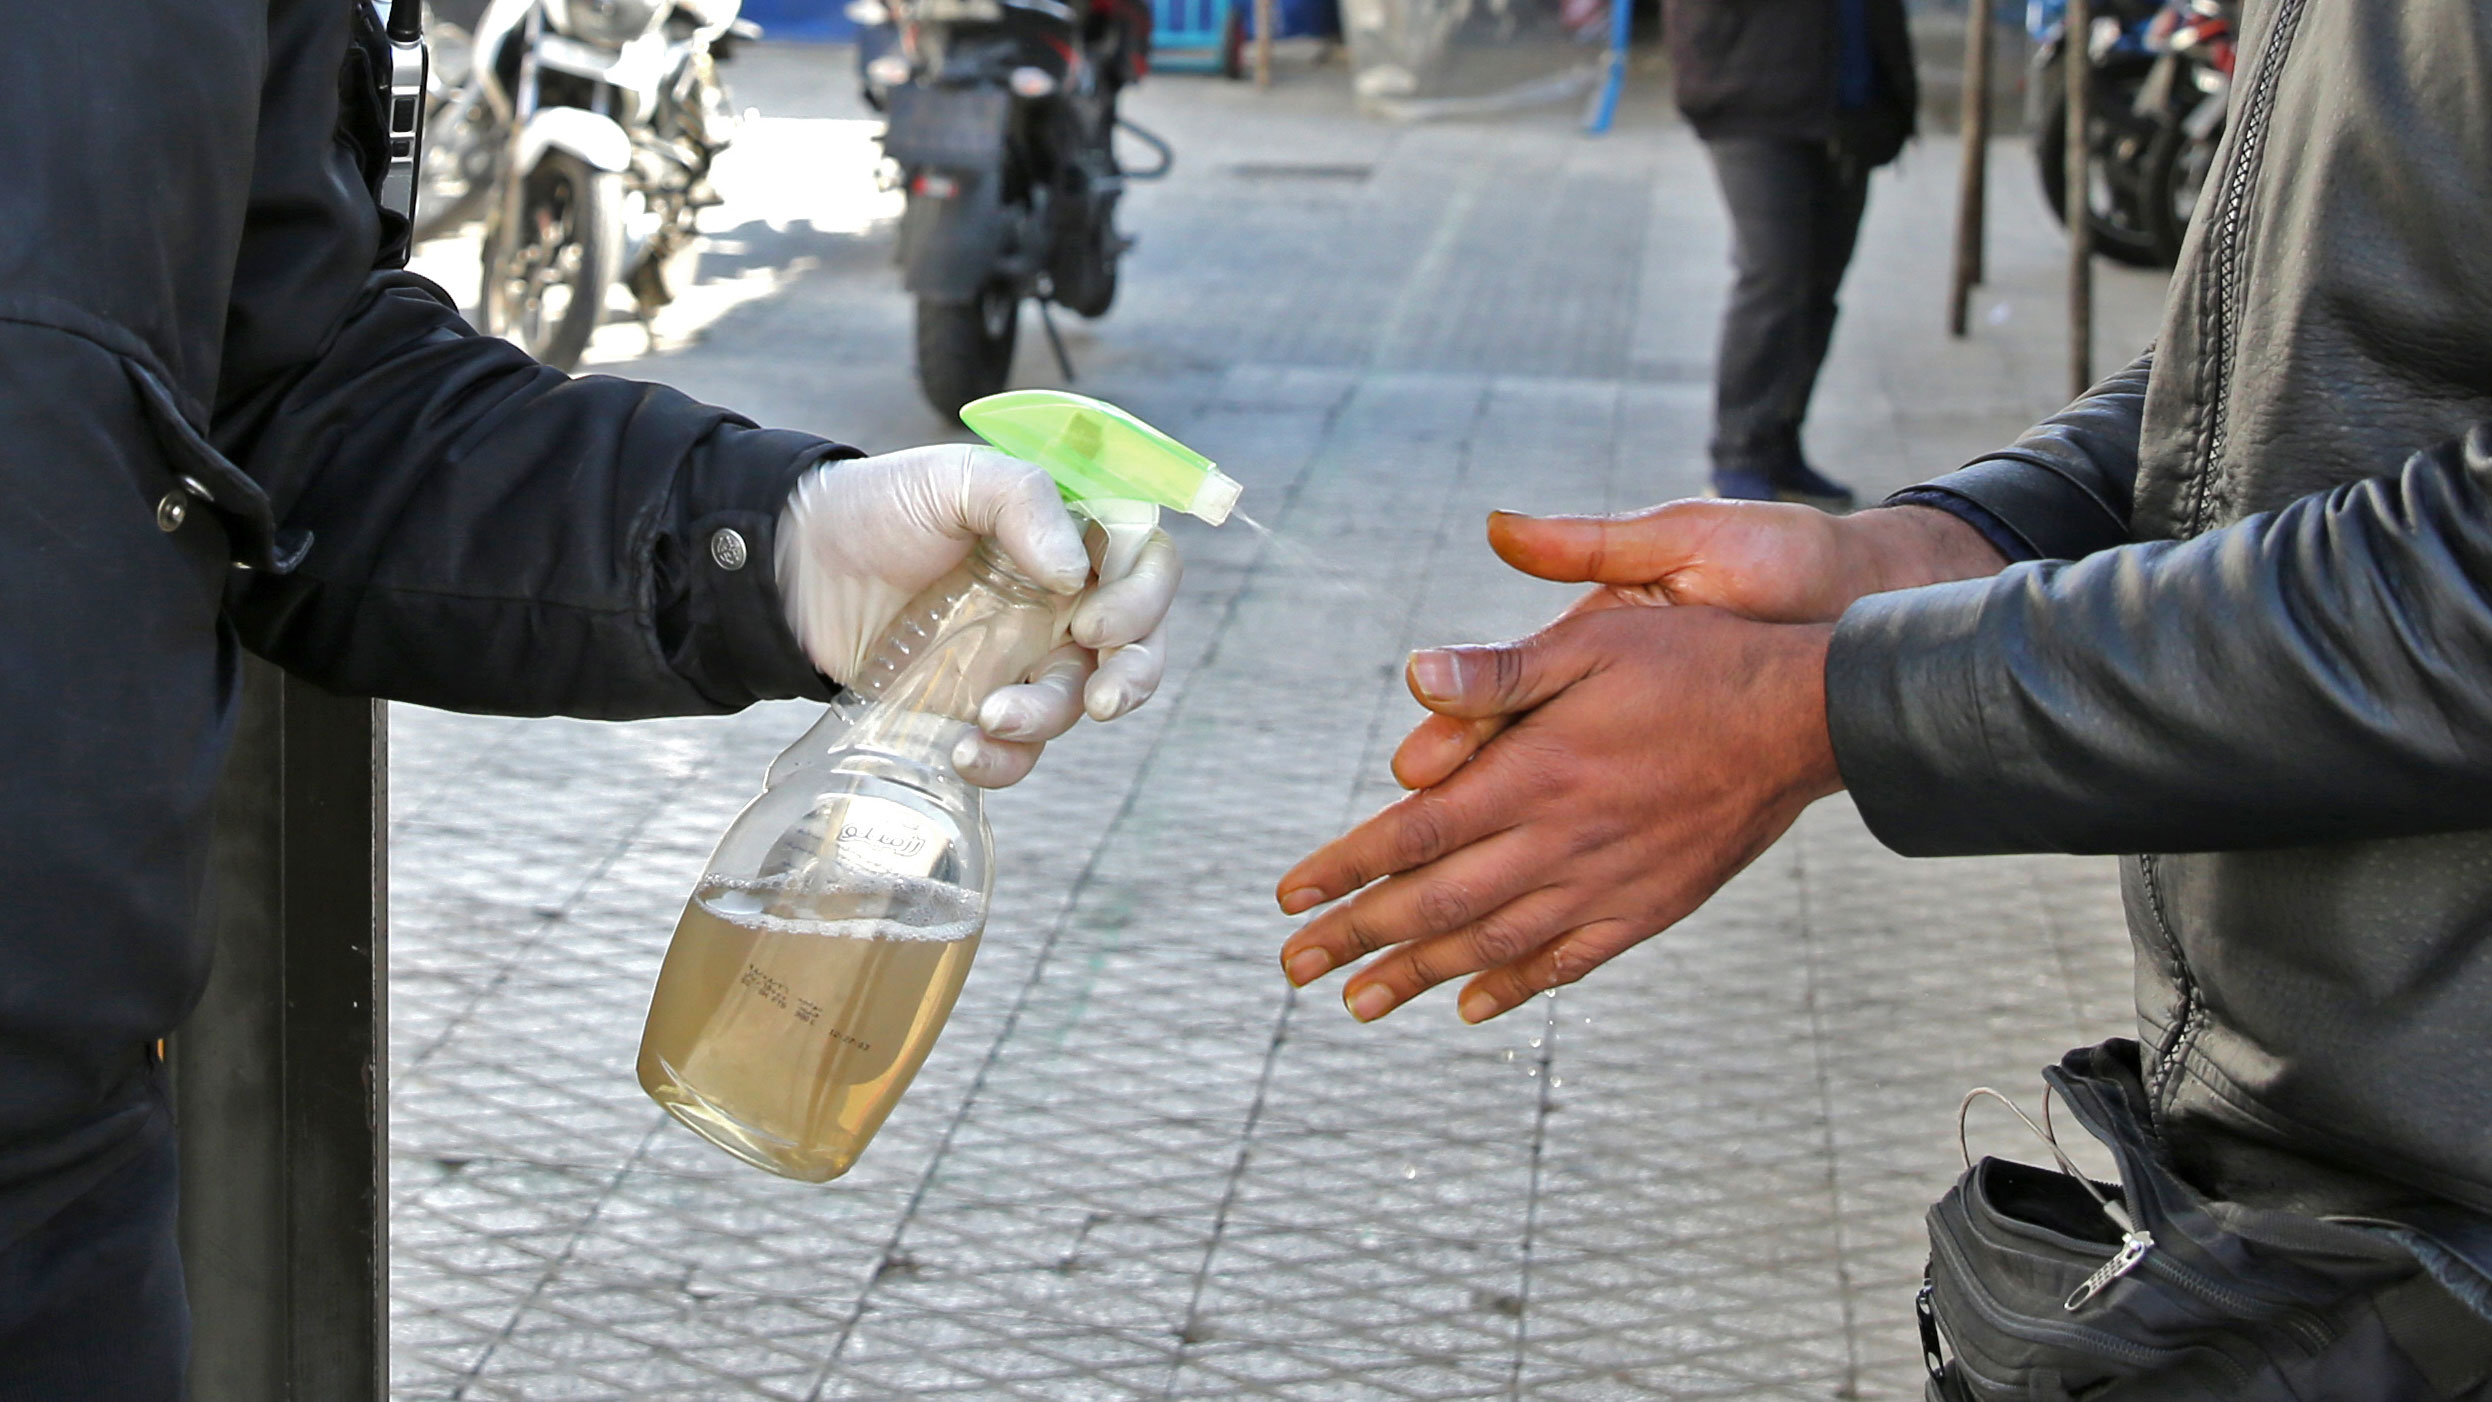 An Iranian man sprays alcohol on the hands of people outside an office building in Tehran on March 4.